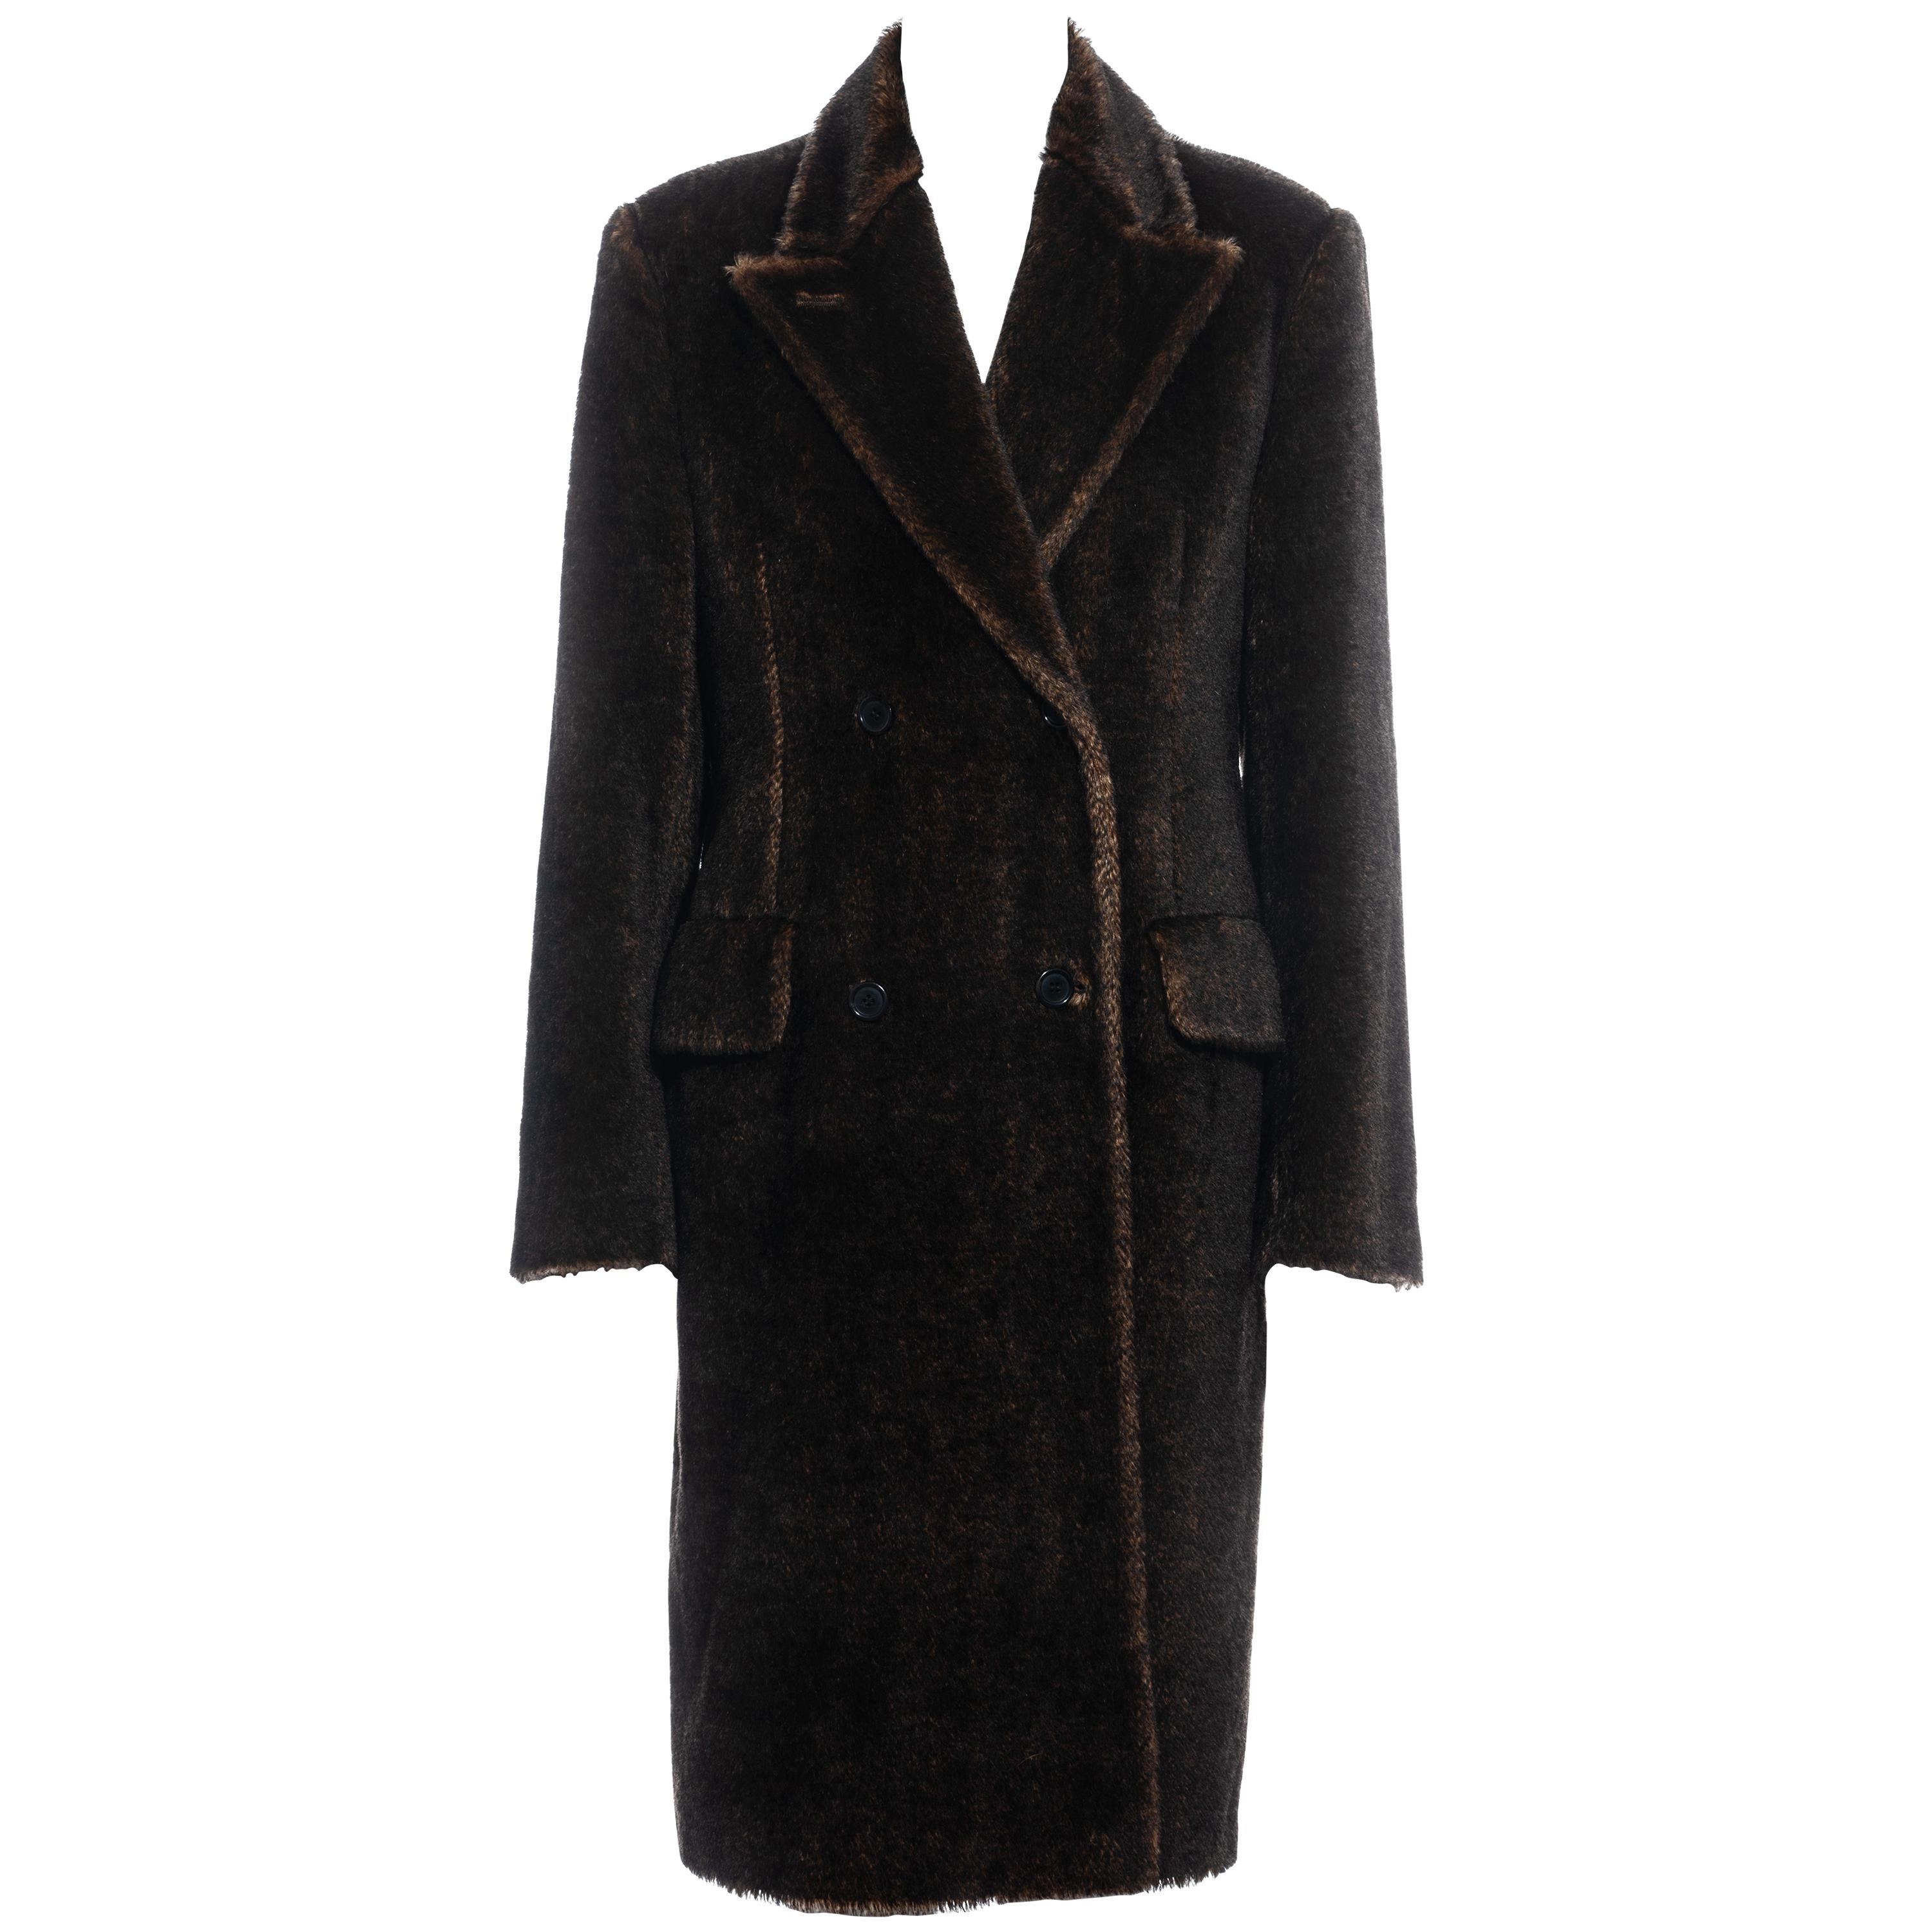 Prada brown mohair double-breasted coat, fw 1997